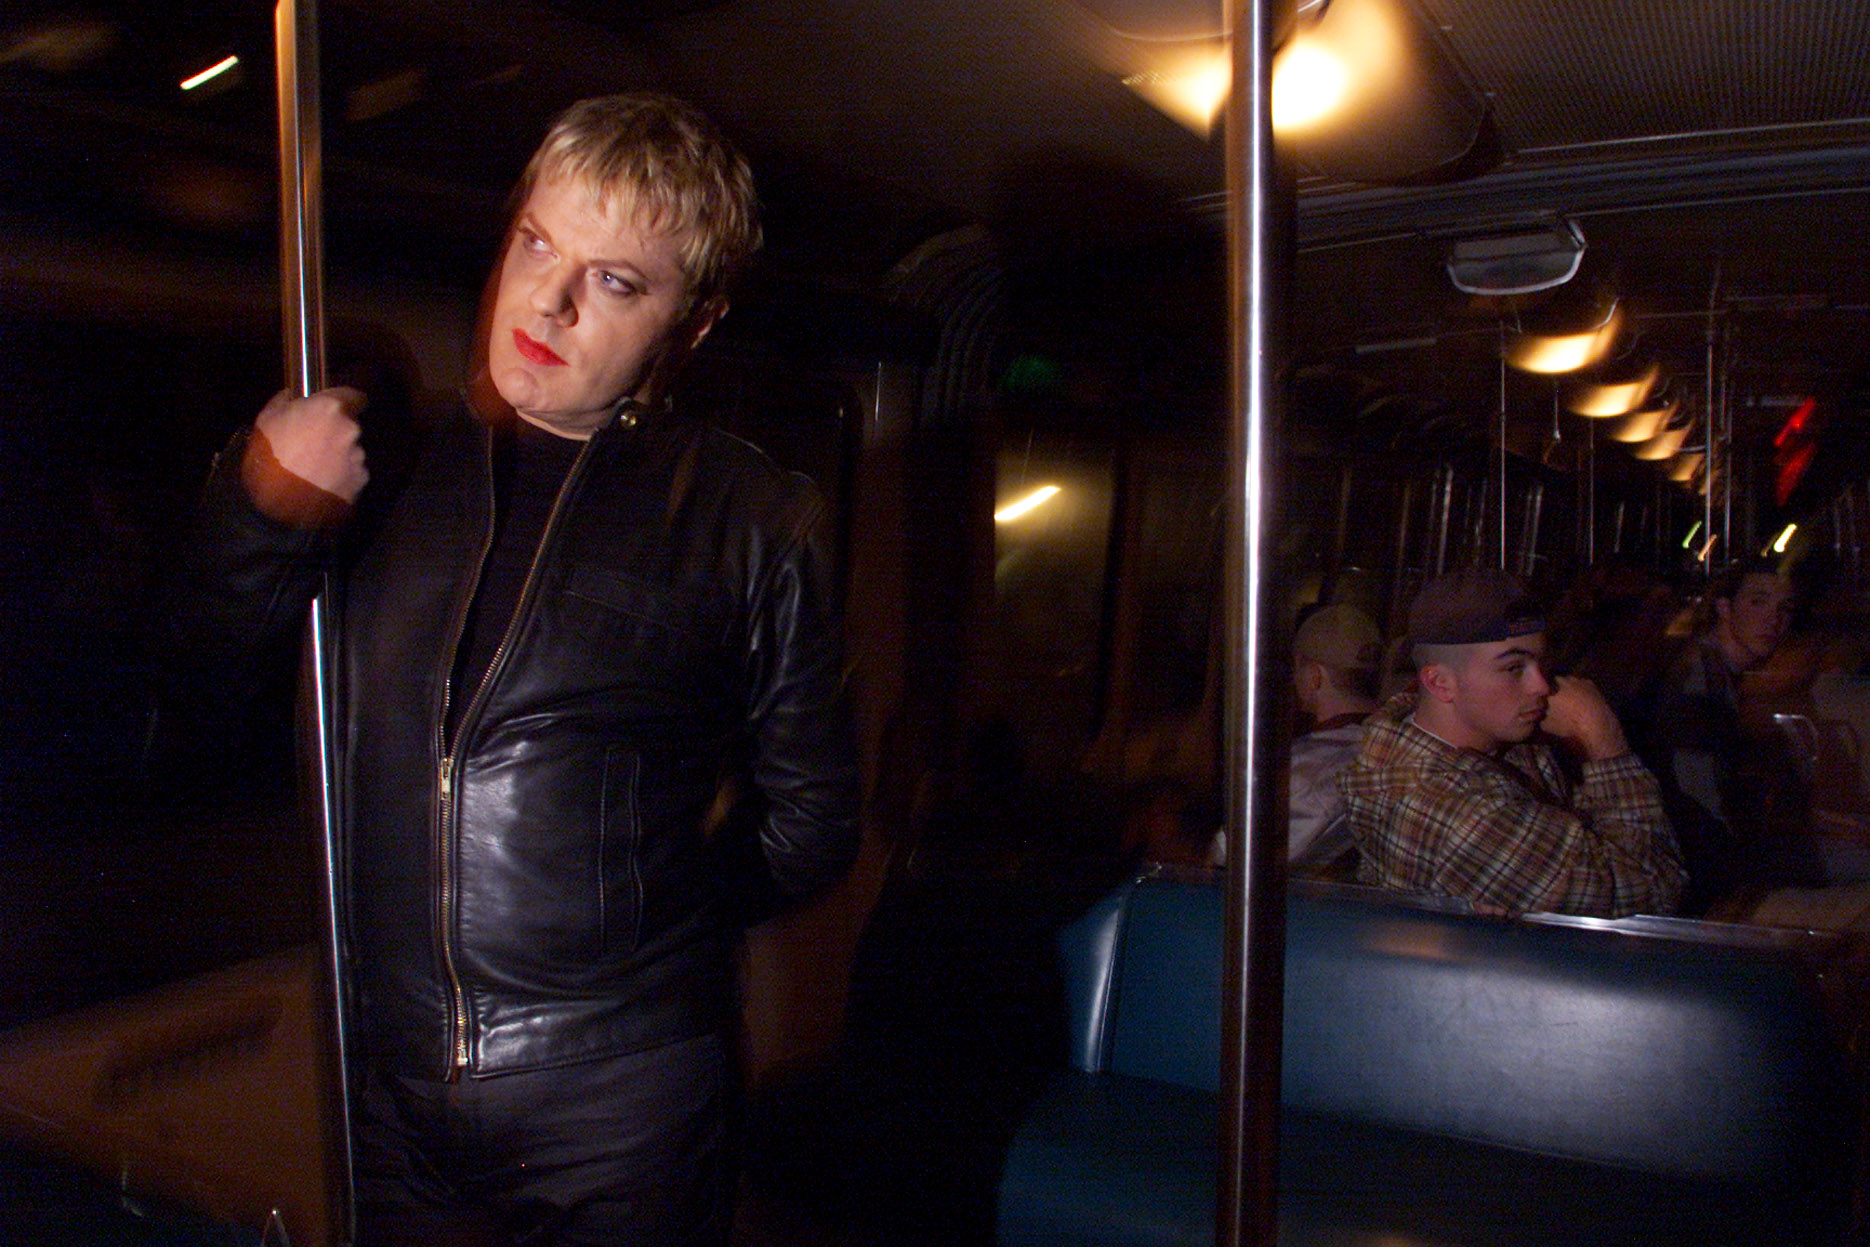 009378.CA.0601.brown2.GF–British comic Eddie Izzard stands apart from the crowd while riding the monorail in downtown Seattle late after his show. Heis touring the country with his one–man show, Circle. He performed Thursday night in Seattle.  (Photo by Gina Ferazzi/Los Angeles Times via Getty Images)